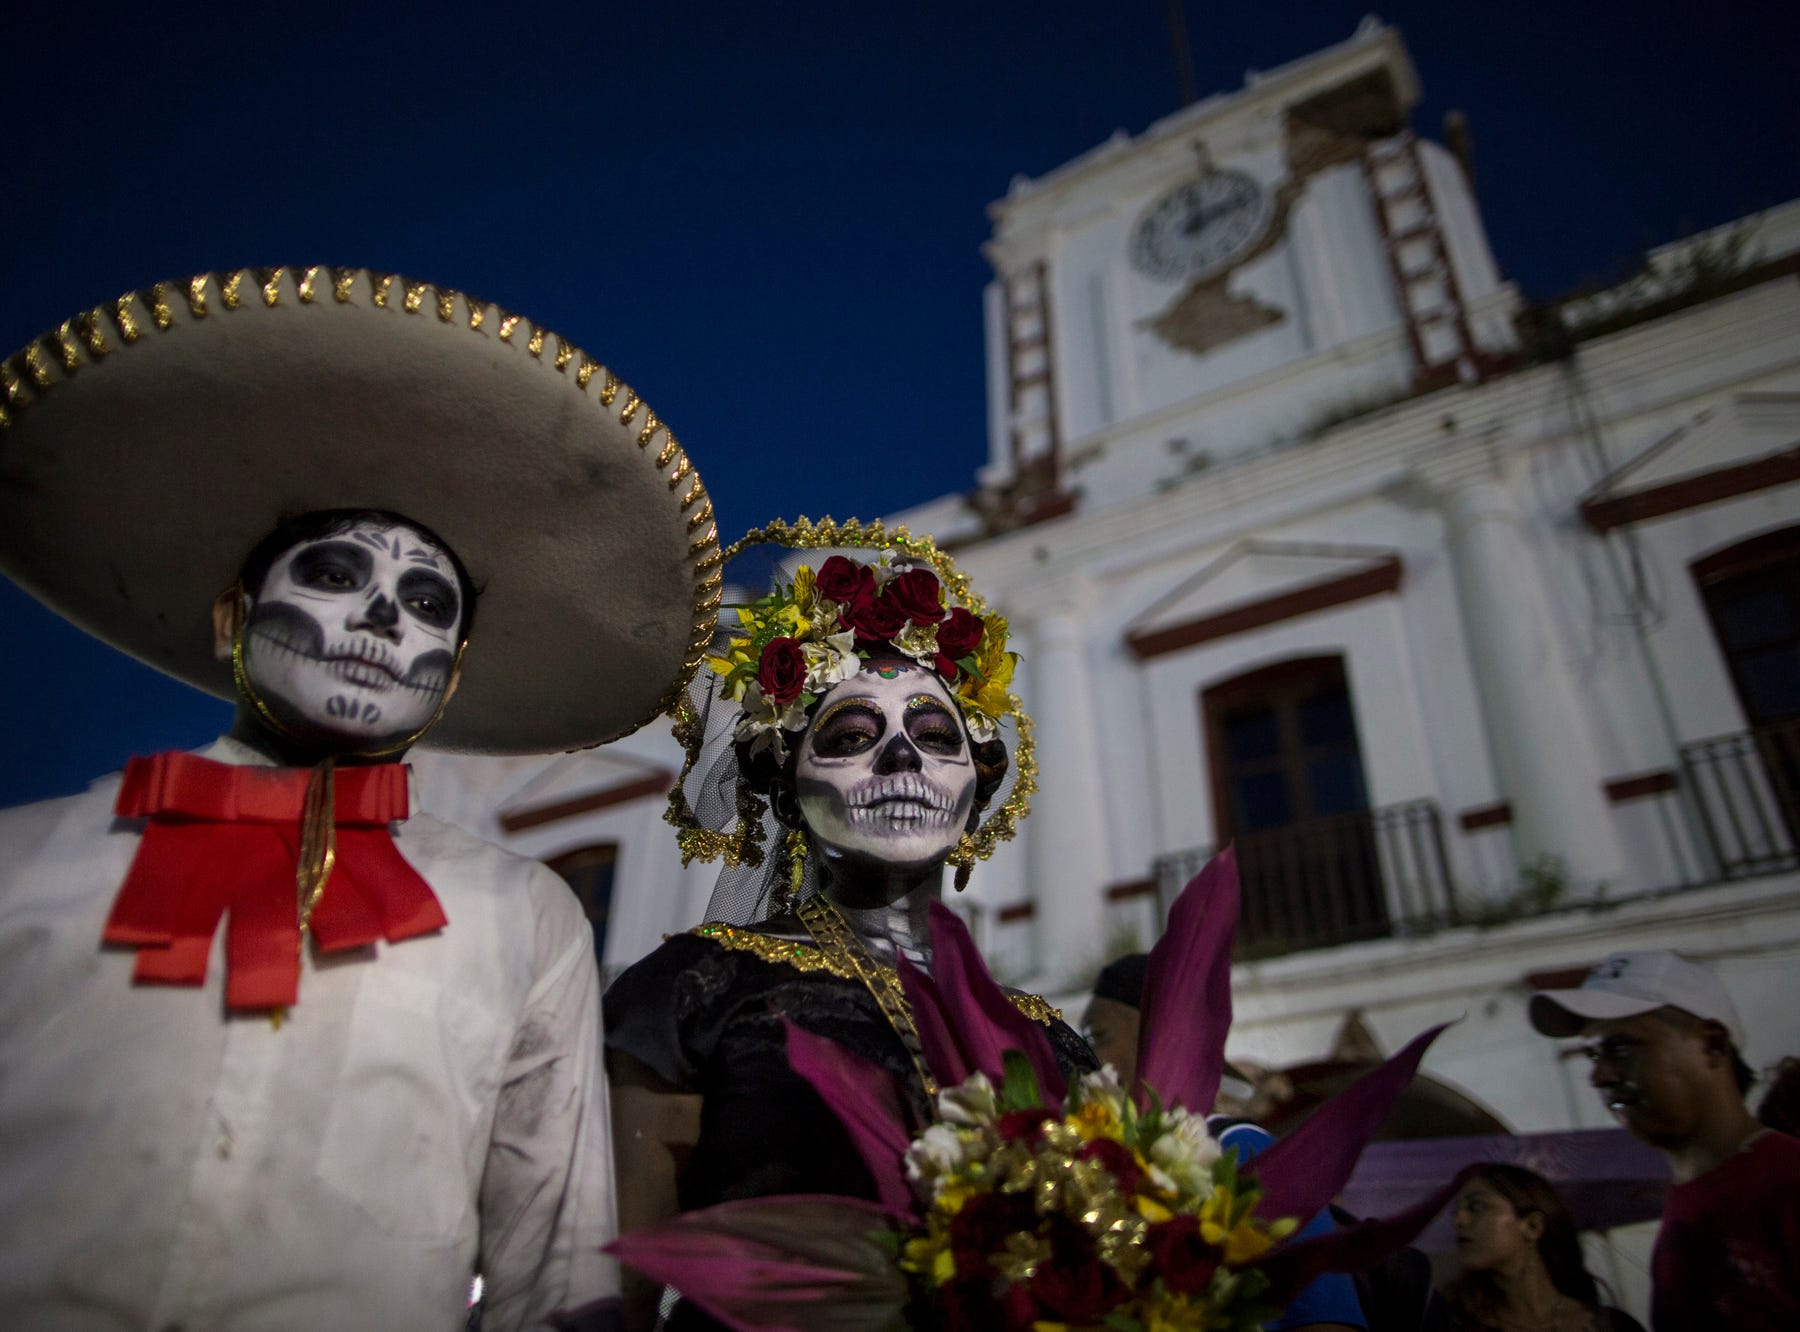 Performers in costume attend a Day of the Dead parade in Juchitan, Mexico, Wednesday, Oct. 31,  2018, the town where a caravan of thousands of Central American migrants are resting for a day as they make their way to the U.S. border. (AP Photo/Rodrigo Abd)